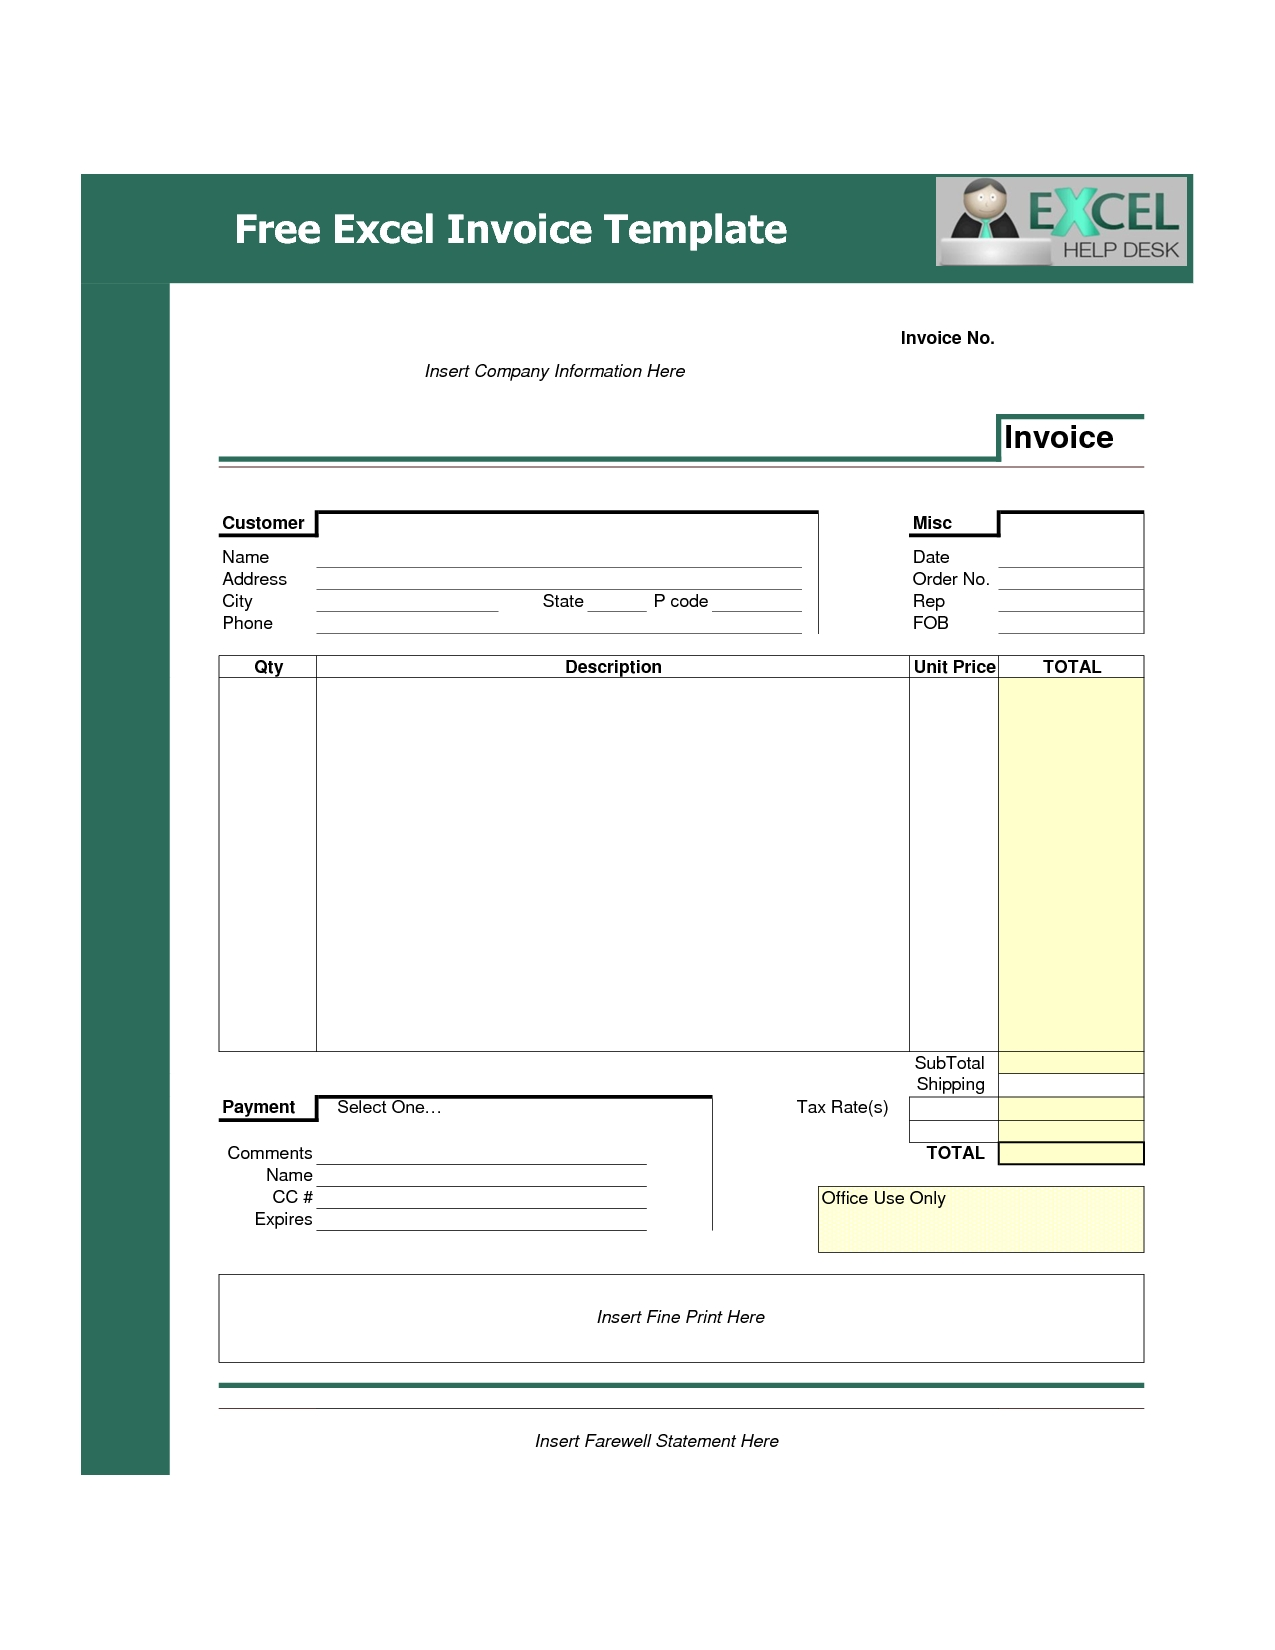 download free invoice invoice sample invoice template word download free invoice 1275 X 1650